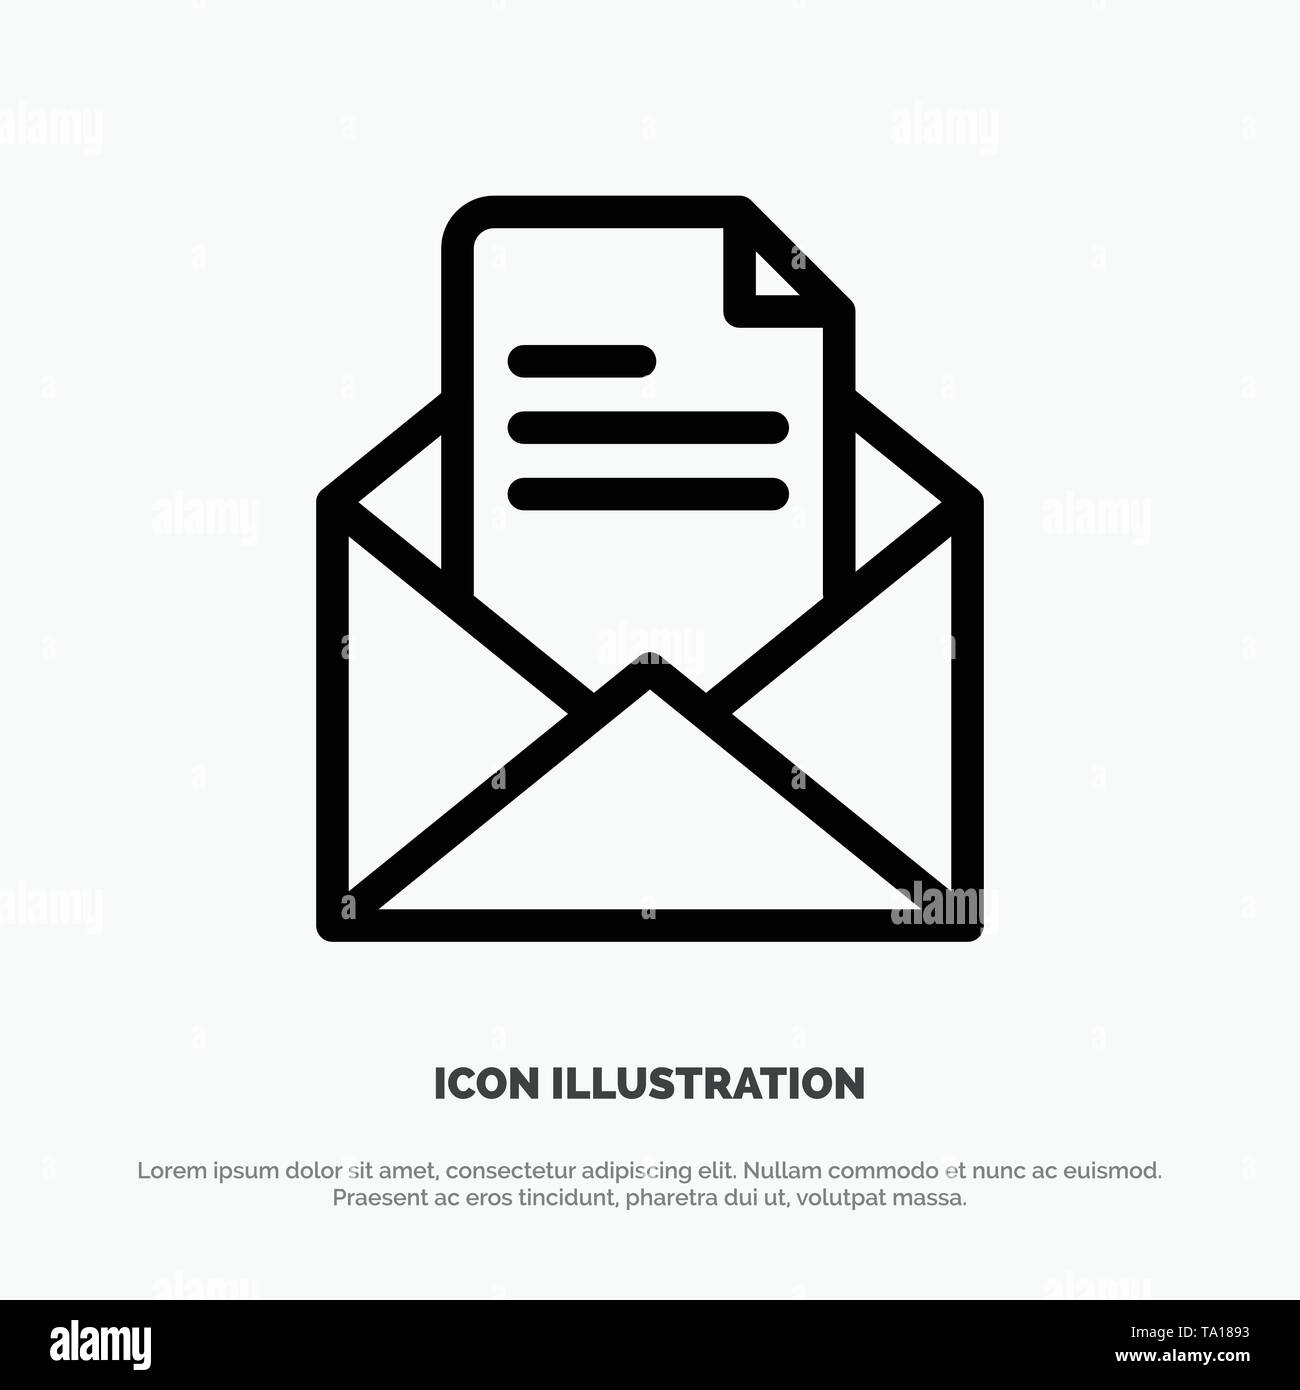 Text, Mail, Office, Pencil Line Icon Vector - Stock Image